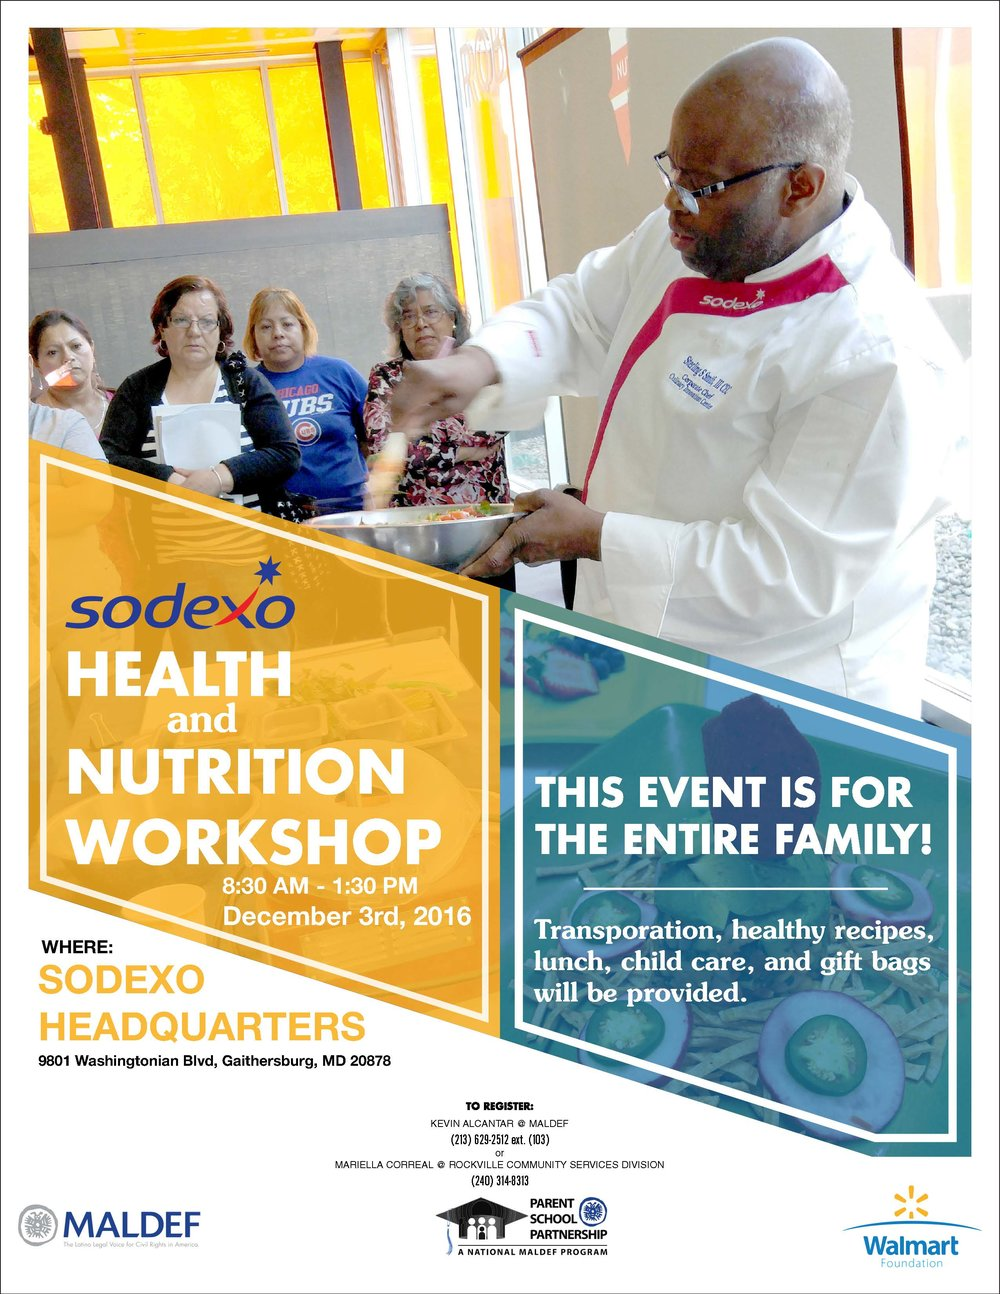 Parent School Partnership - Sodexo Nutrition Workshop Flyer   Redesigned PSP program flyer template for nationwide Sodexo Nutrition Workshop event.  2016